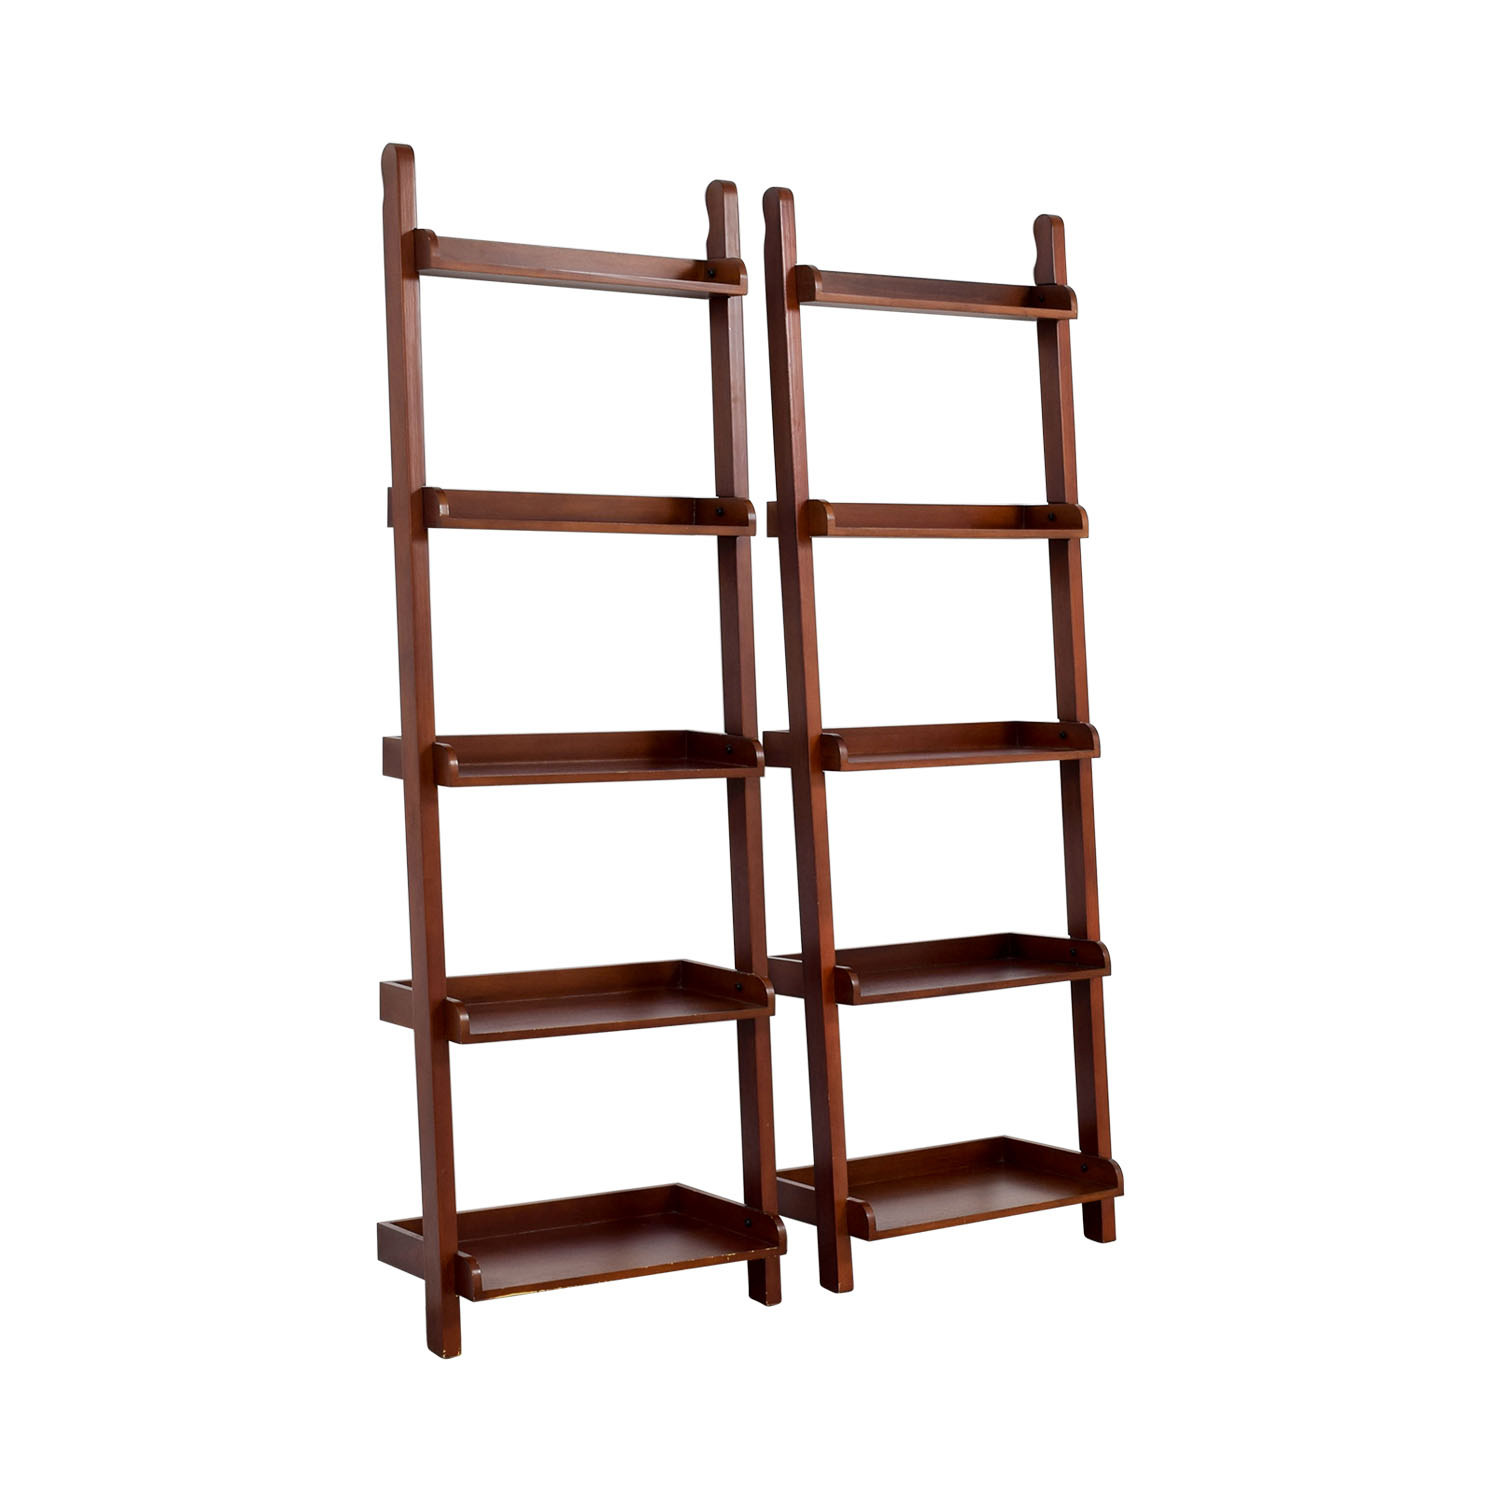 Espresso Wood Leaning Bookshelves second hand